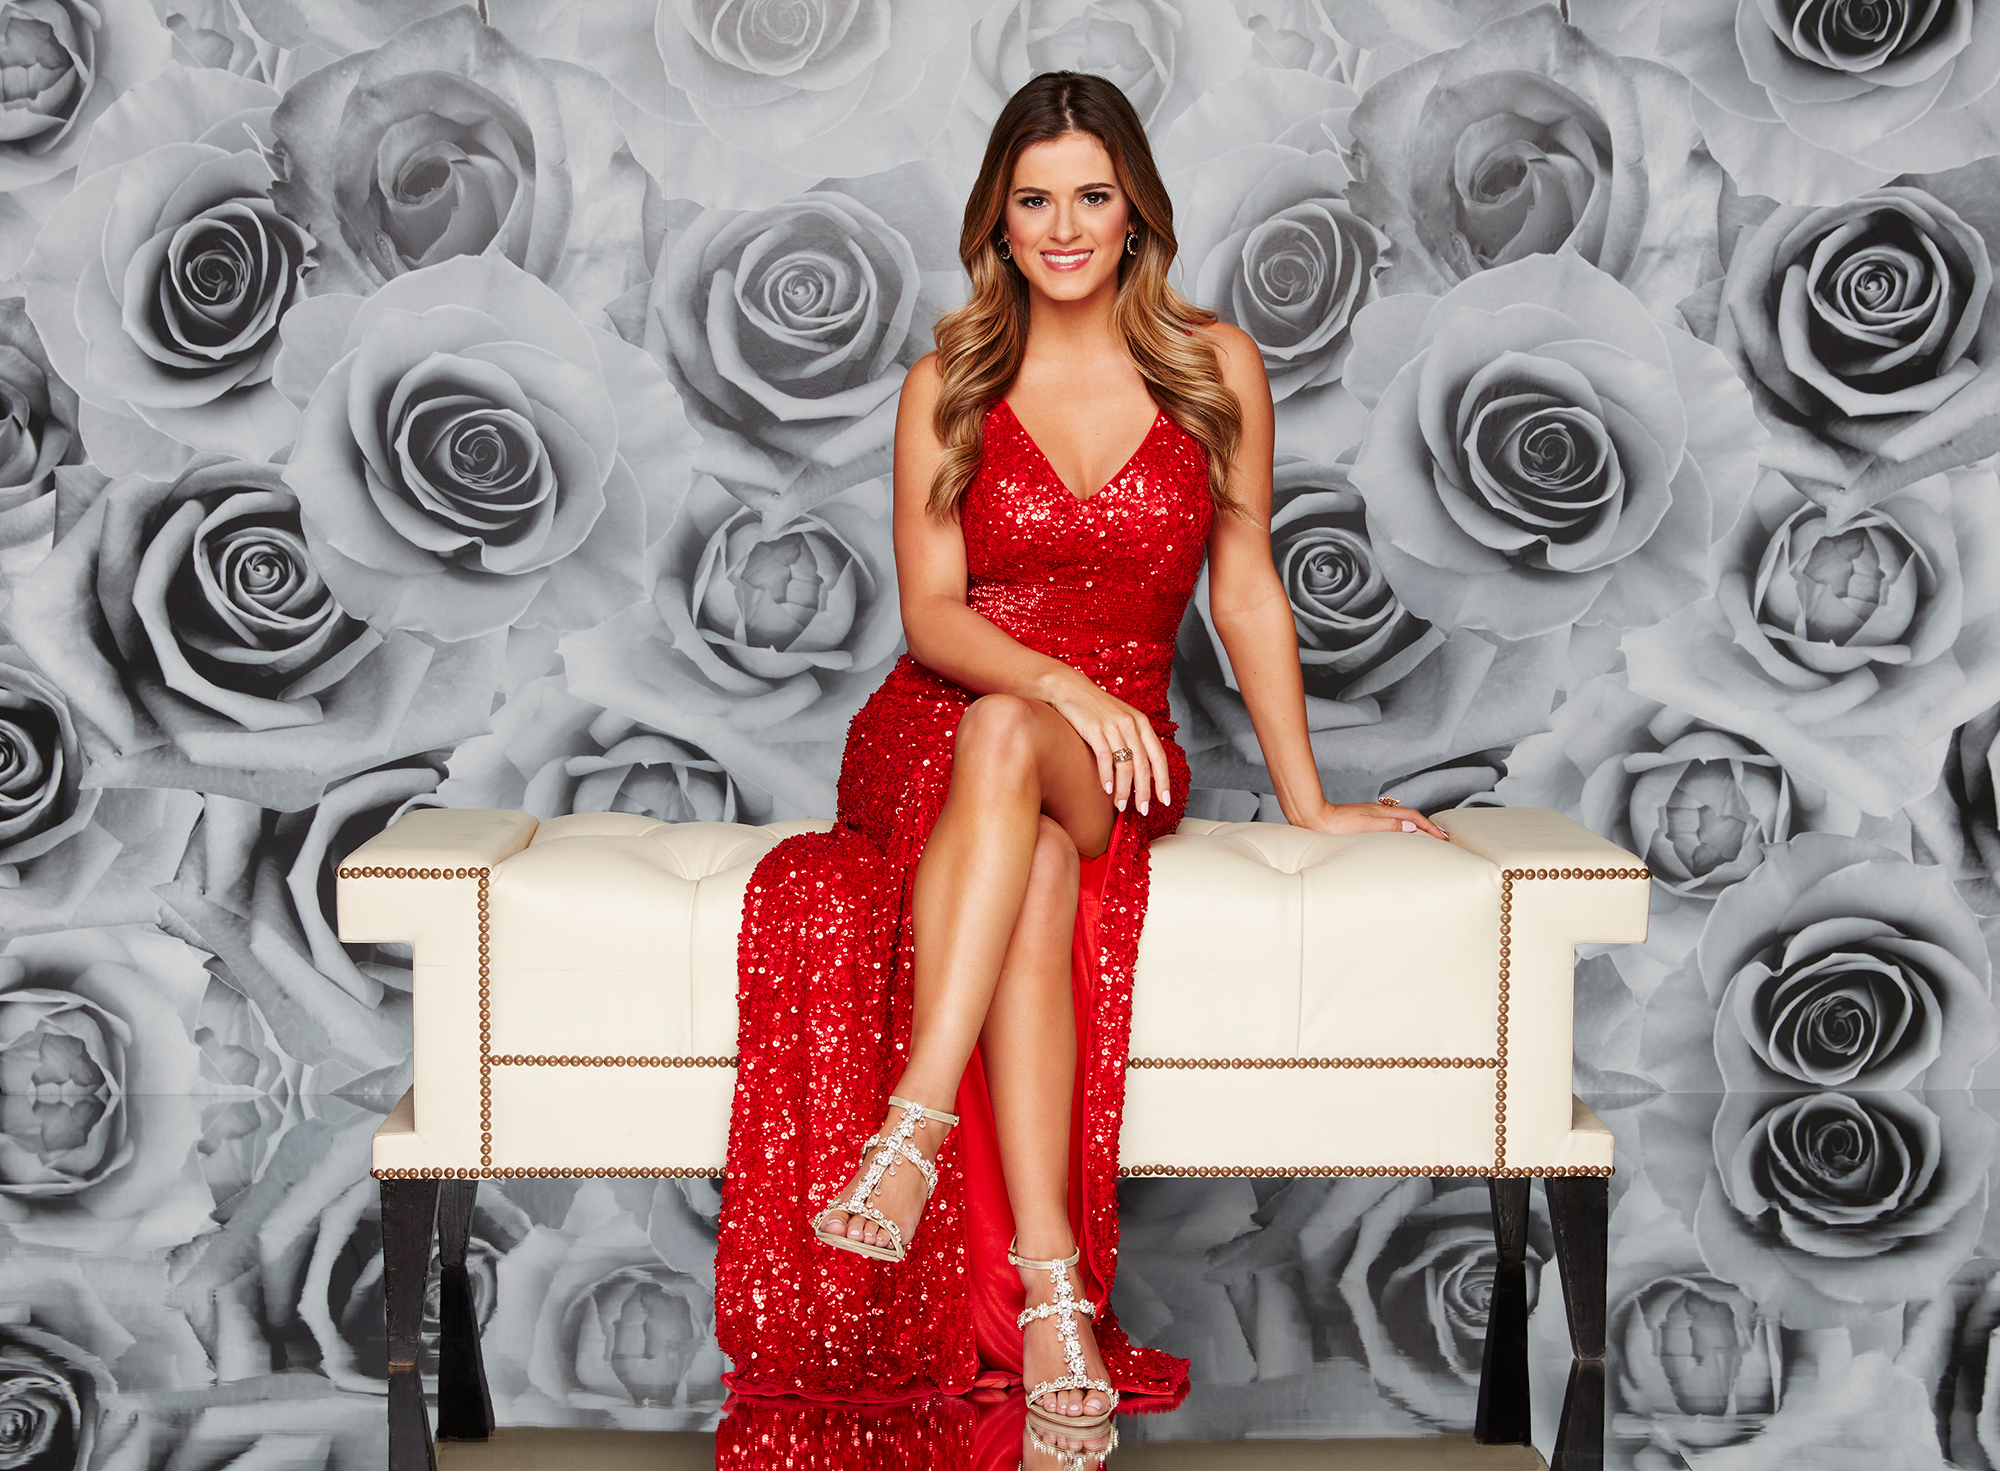 JoJo Fletcher: 25 Things You Don't Know About Me